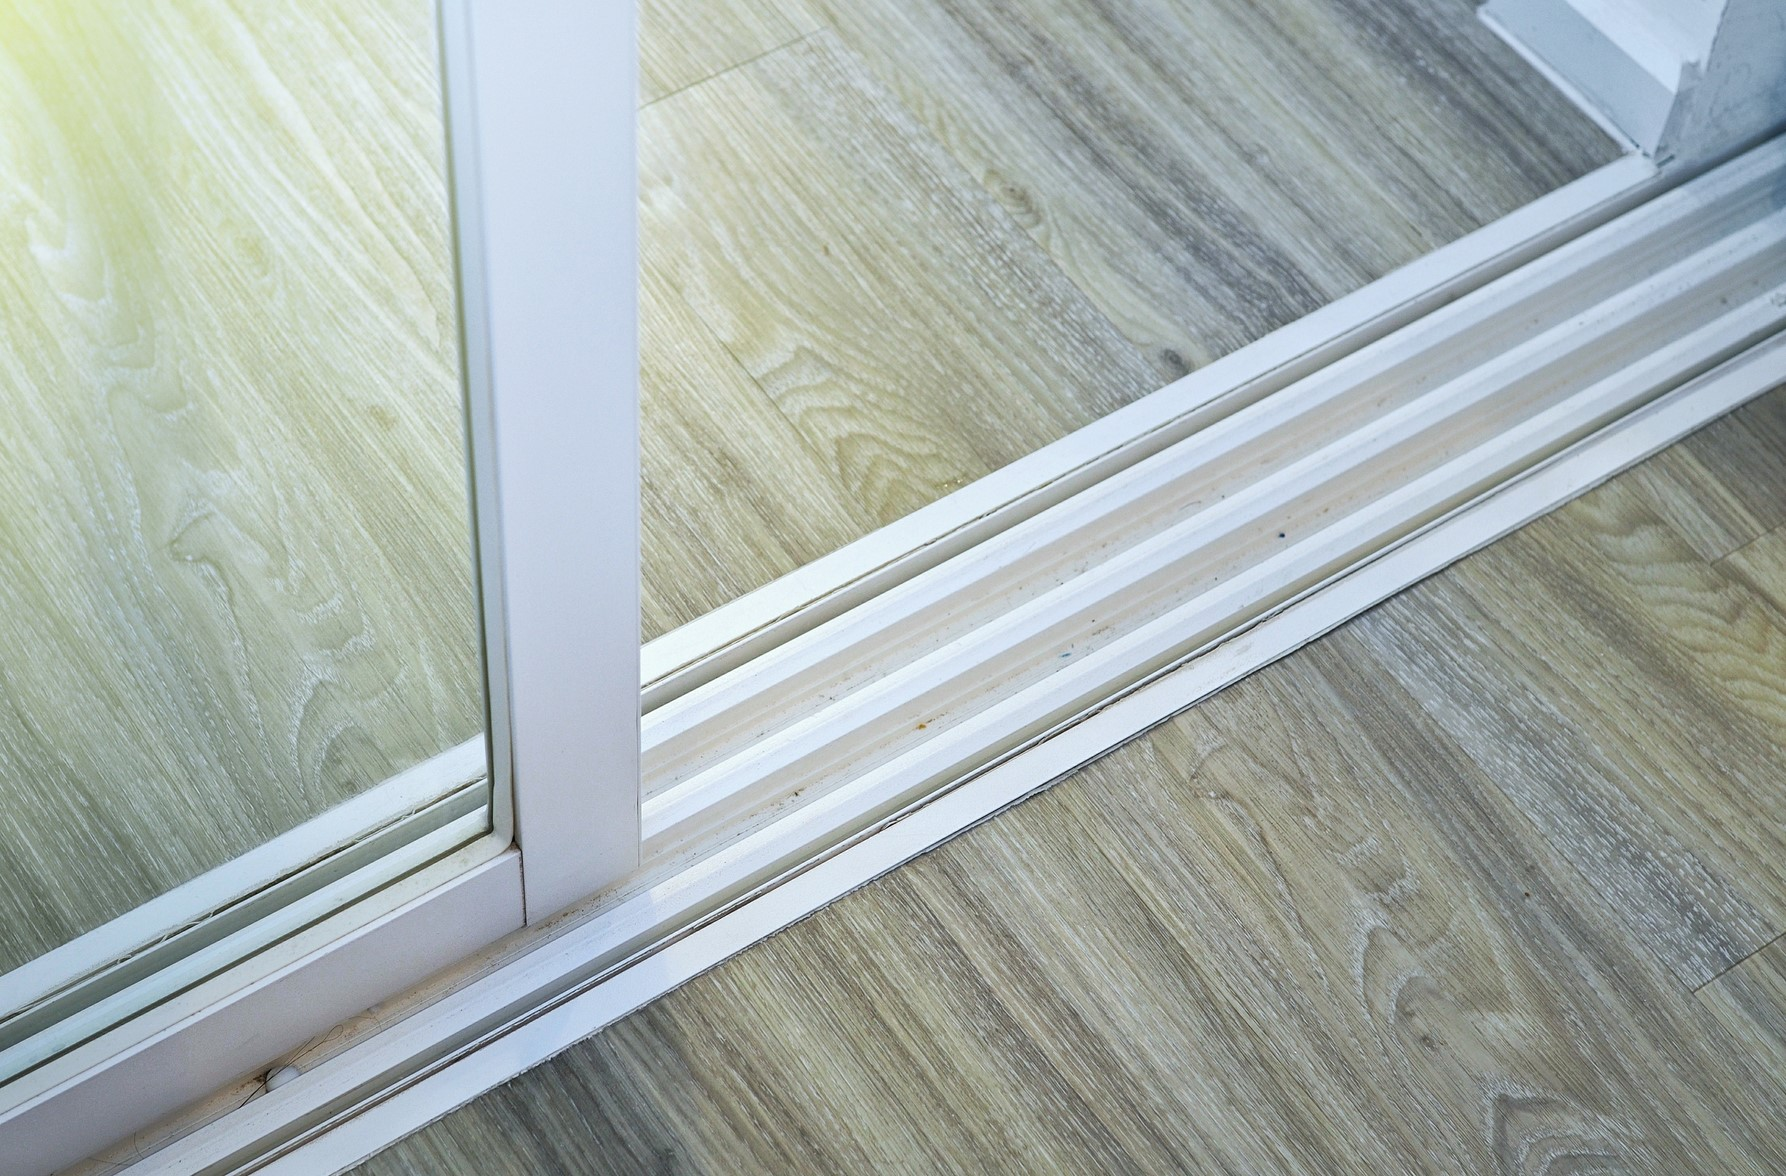 Why Are Sliding Glass Doors Better Than Hinged Doors?